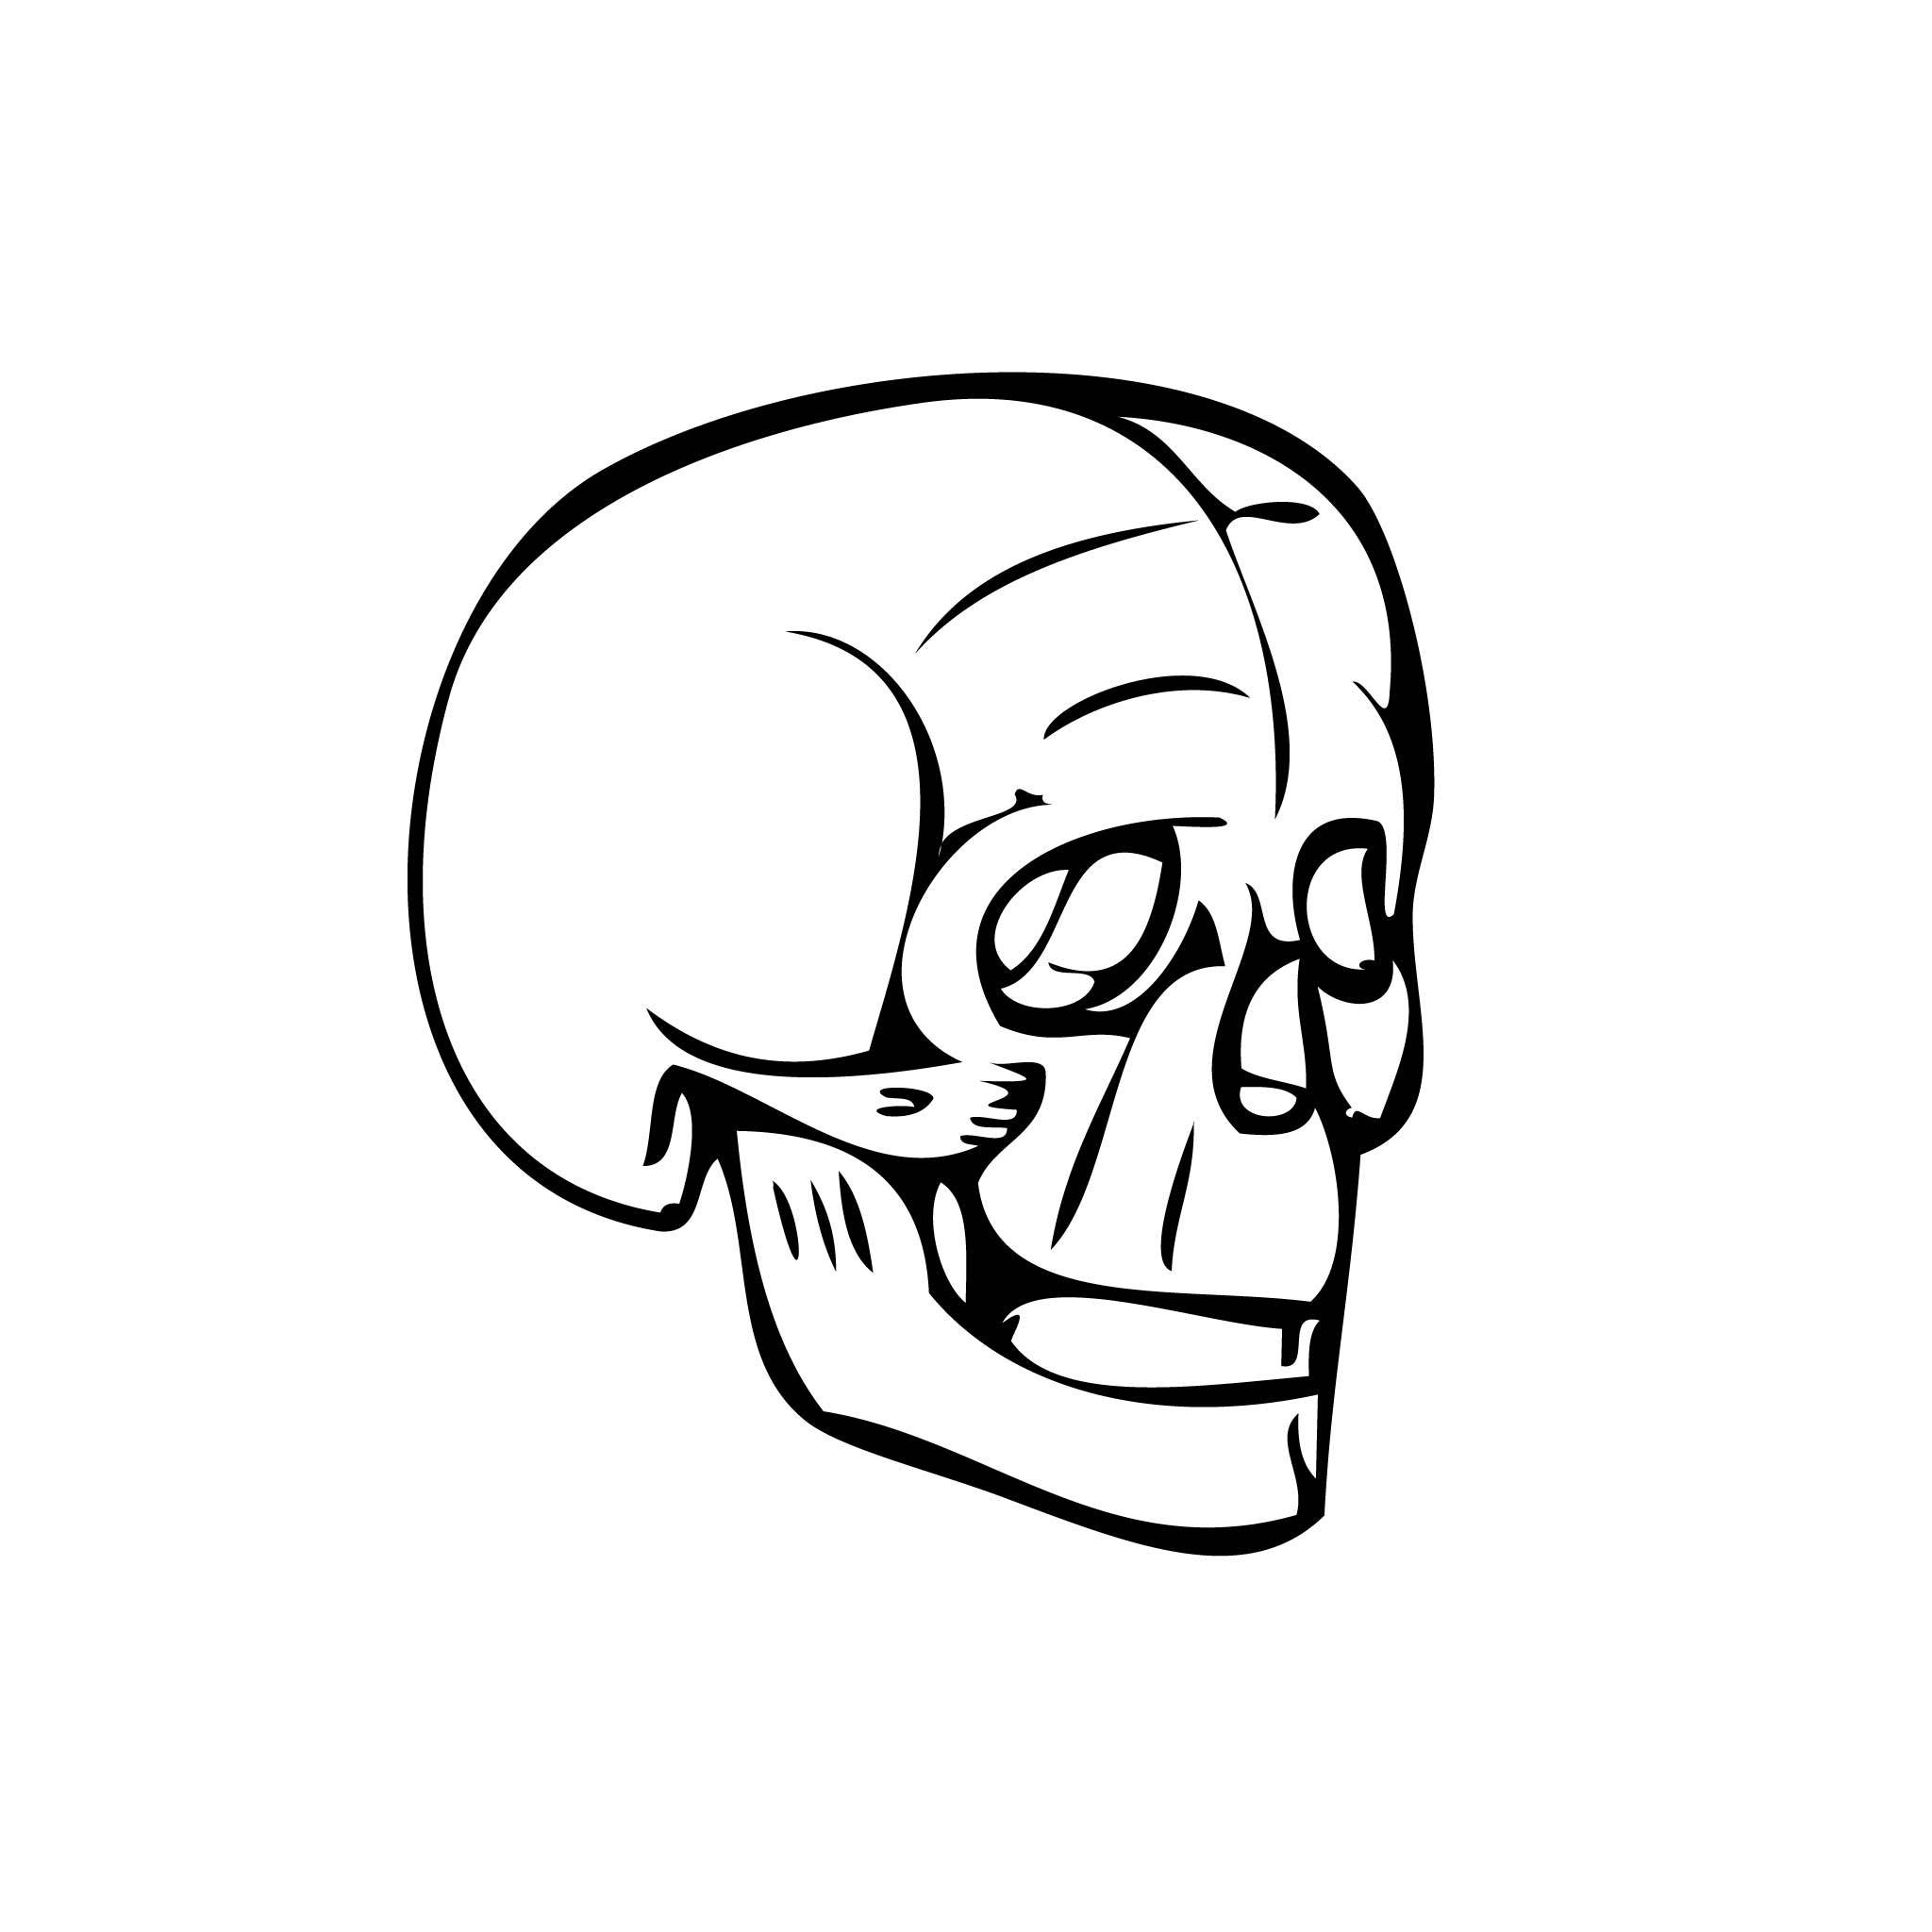 Min Skull Temporary Tatoo Design. Tags: Minimal, Black and White, People,